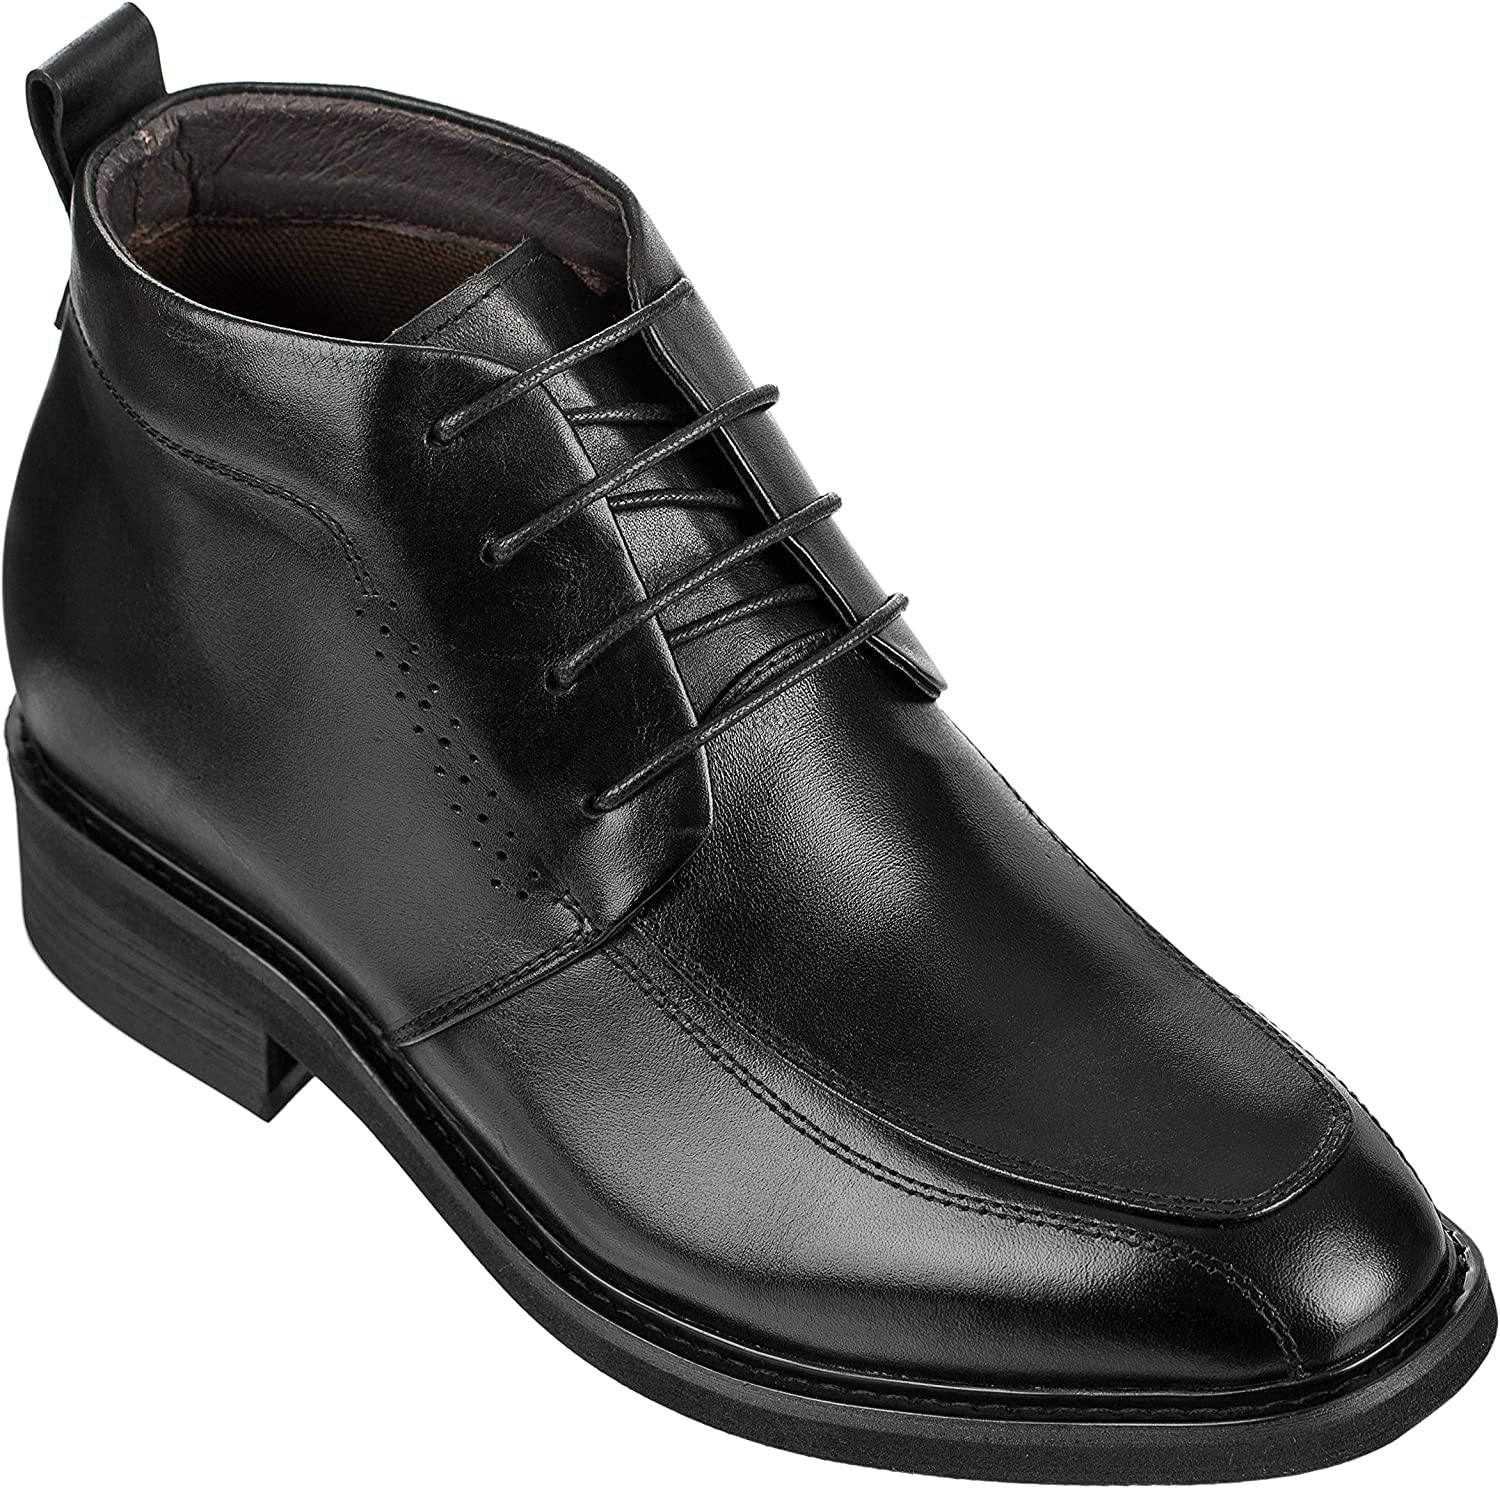 Calden Men's Invisible Height Increasing Elevator shoes - Black Leather Lace-up Dress Formal Ankle Boots - 3 Inches Taller - K28801